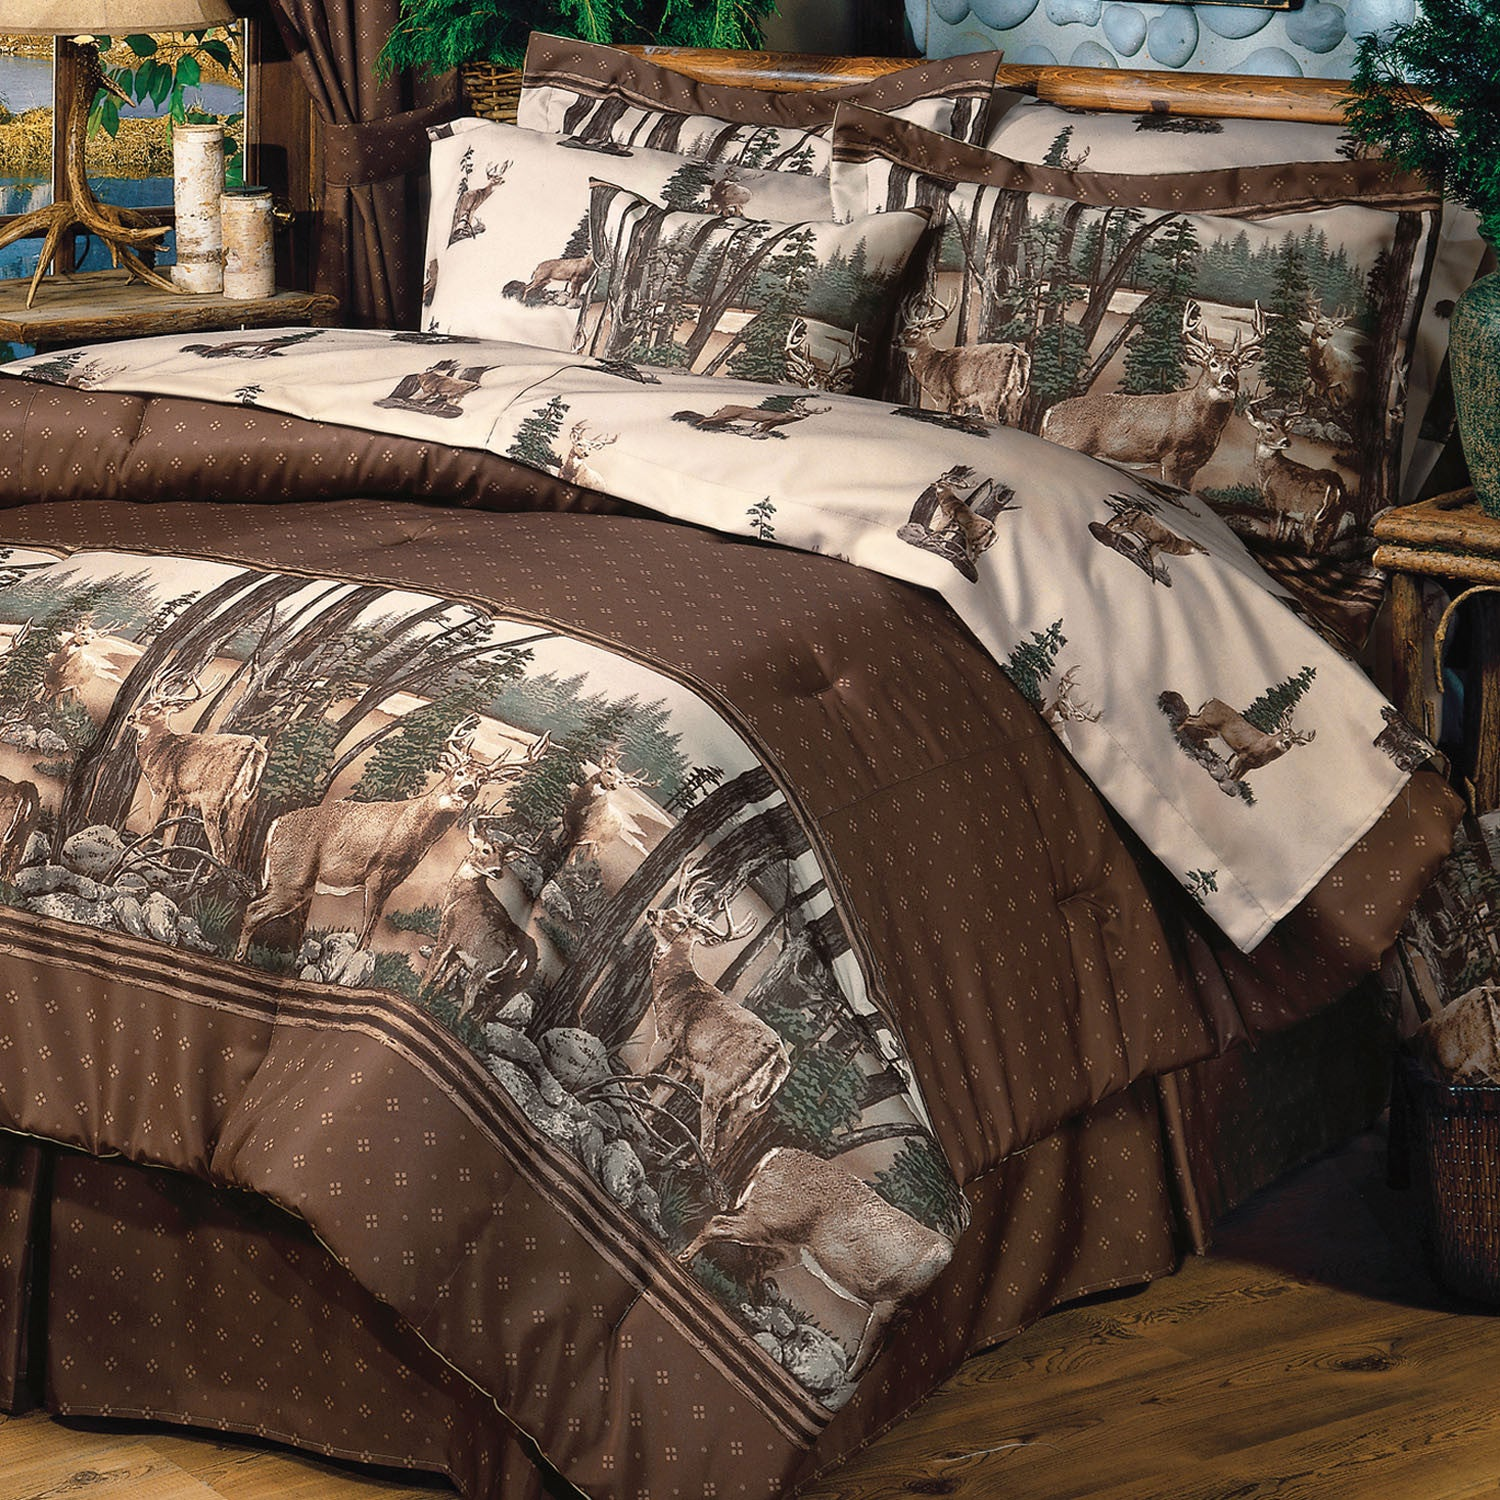 Whitetail Dreams Sheet Set  Full - Back40Trading2